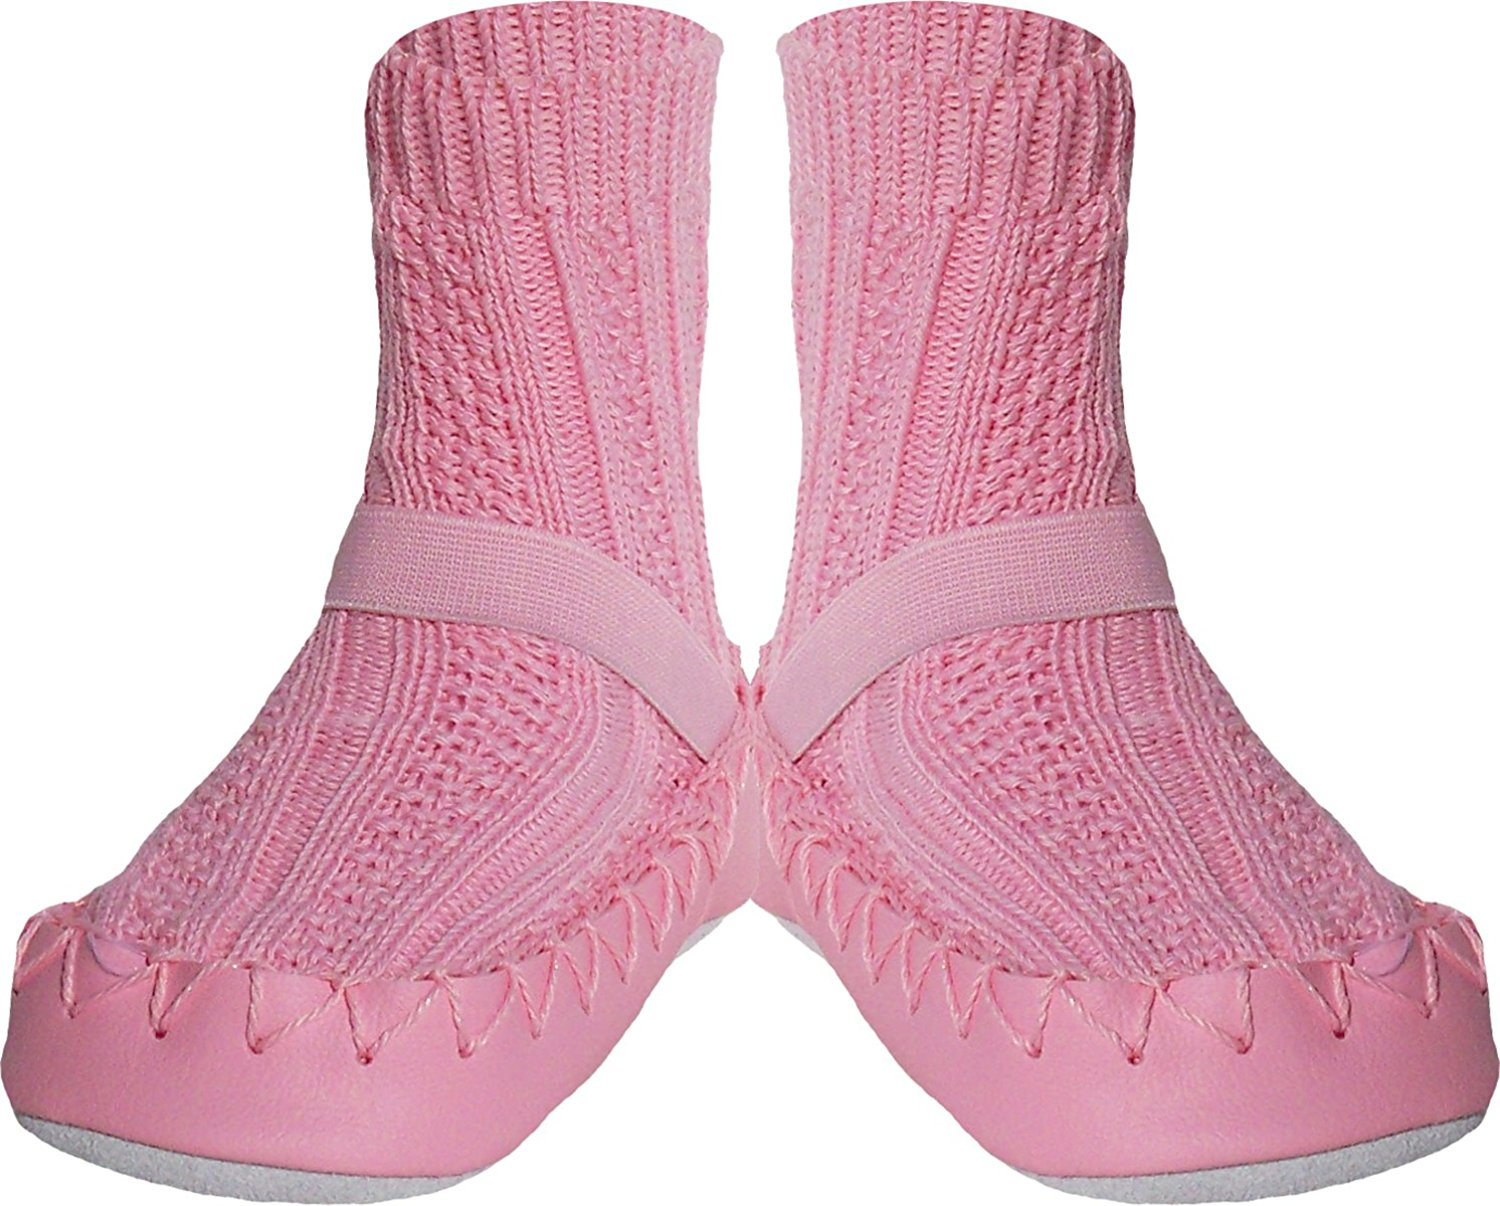 Girls Slipper Socks Pre-Schoolers and Children Home Footwear for Toddlers Konfetti Puppy Dog Swedish Moccasins House Slippers Shoes